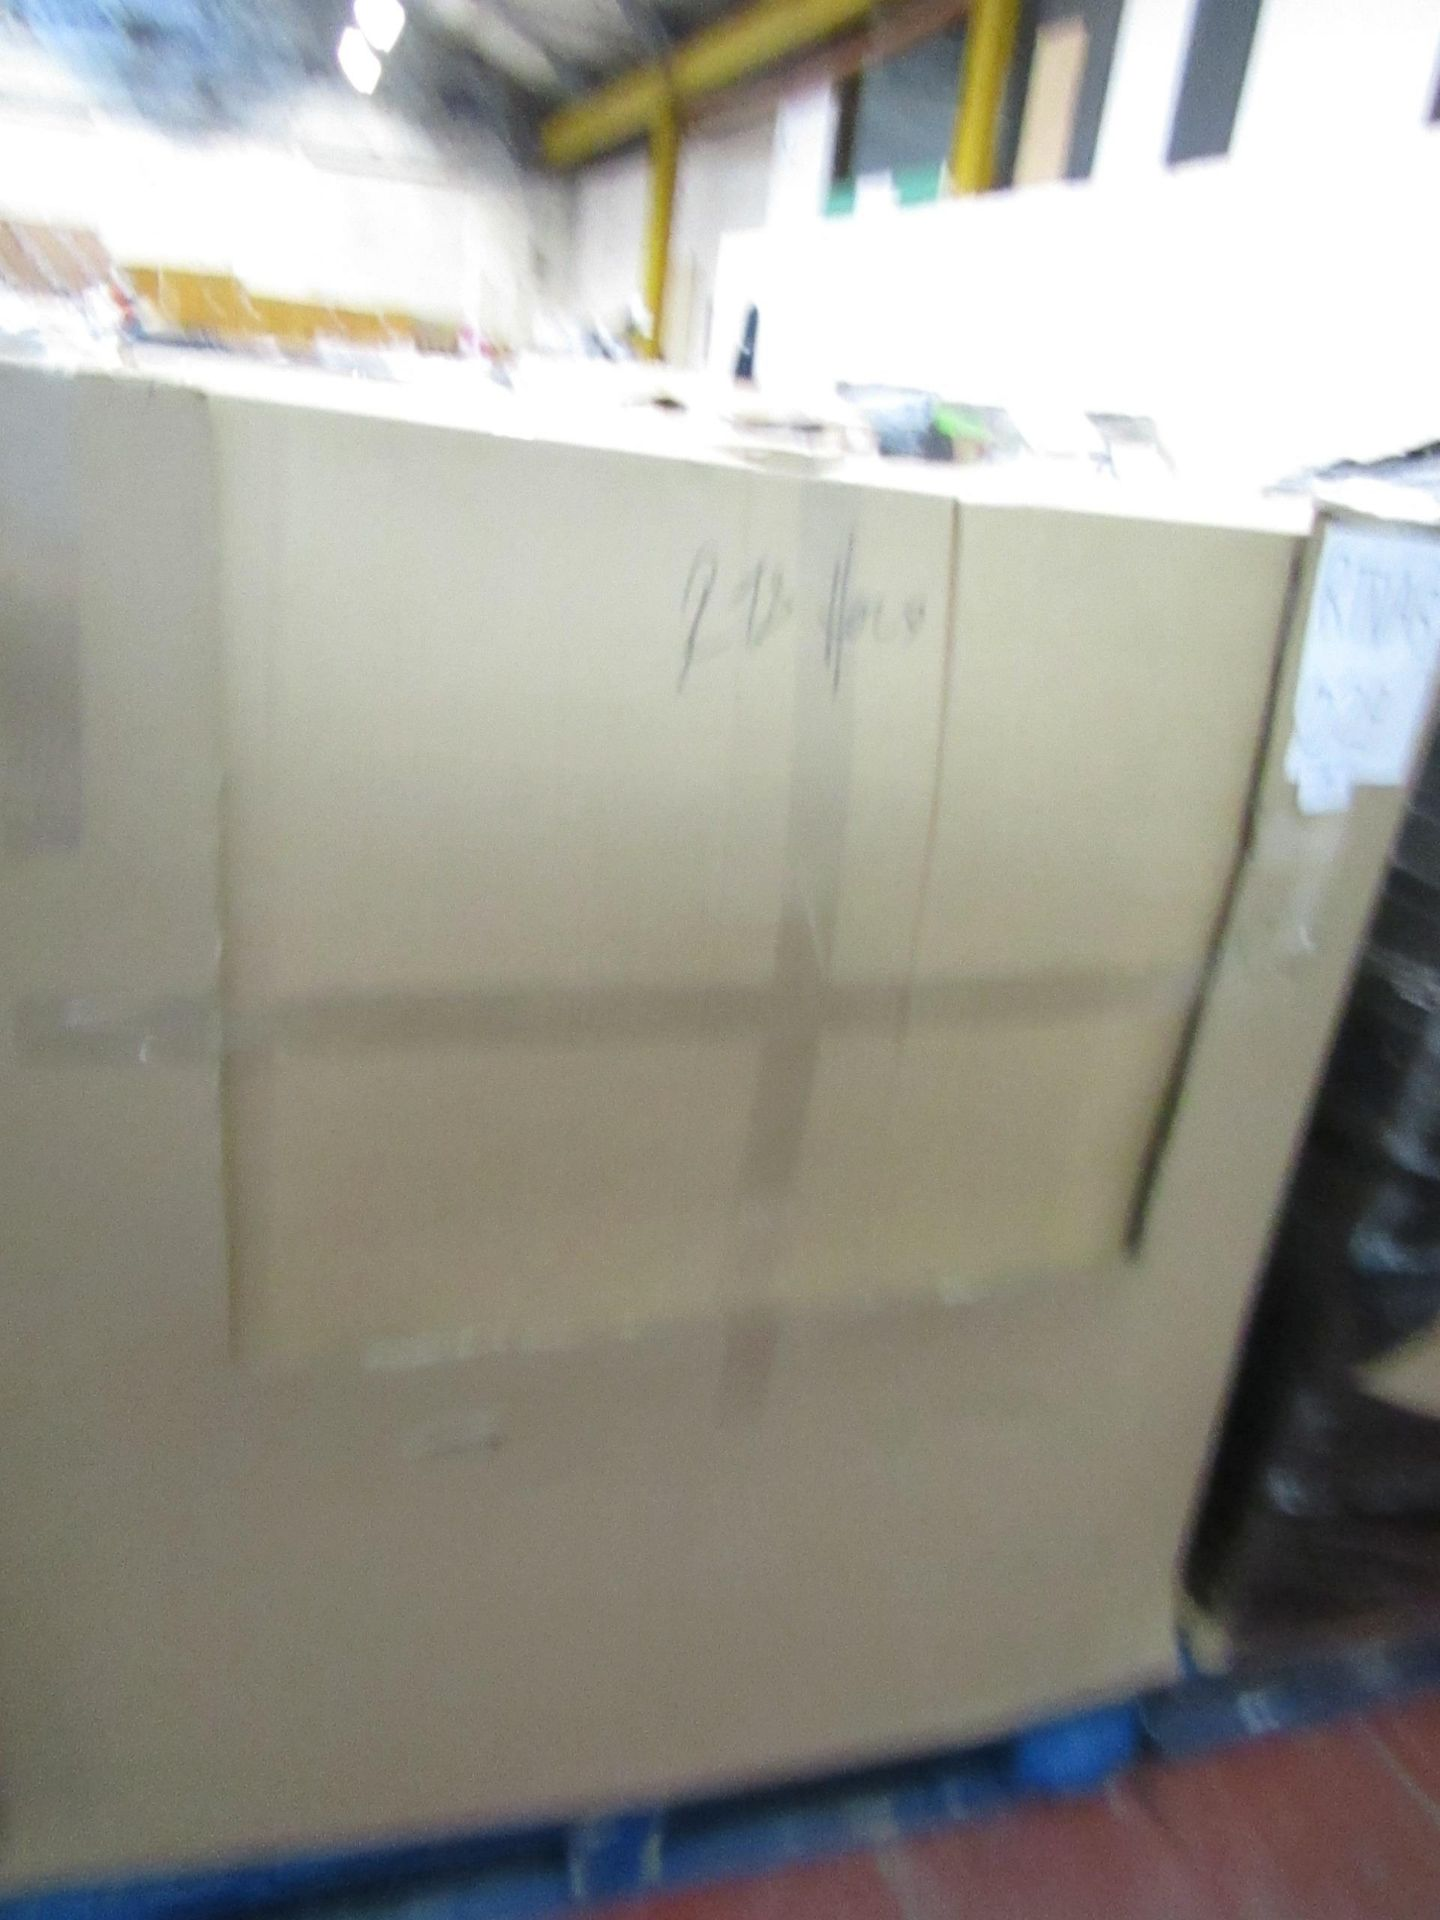 Lot 20 - | 34X | THE PALLET CONTAINS VARIOUS SIZED YAWN AIR BEDS | BOXED AND UNCHECKED | NO ONLINE RE-